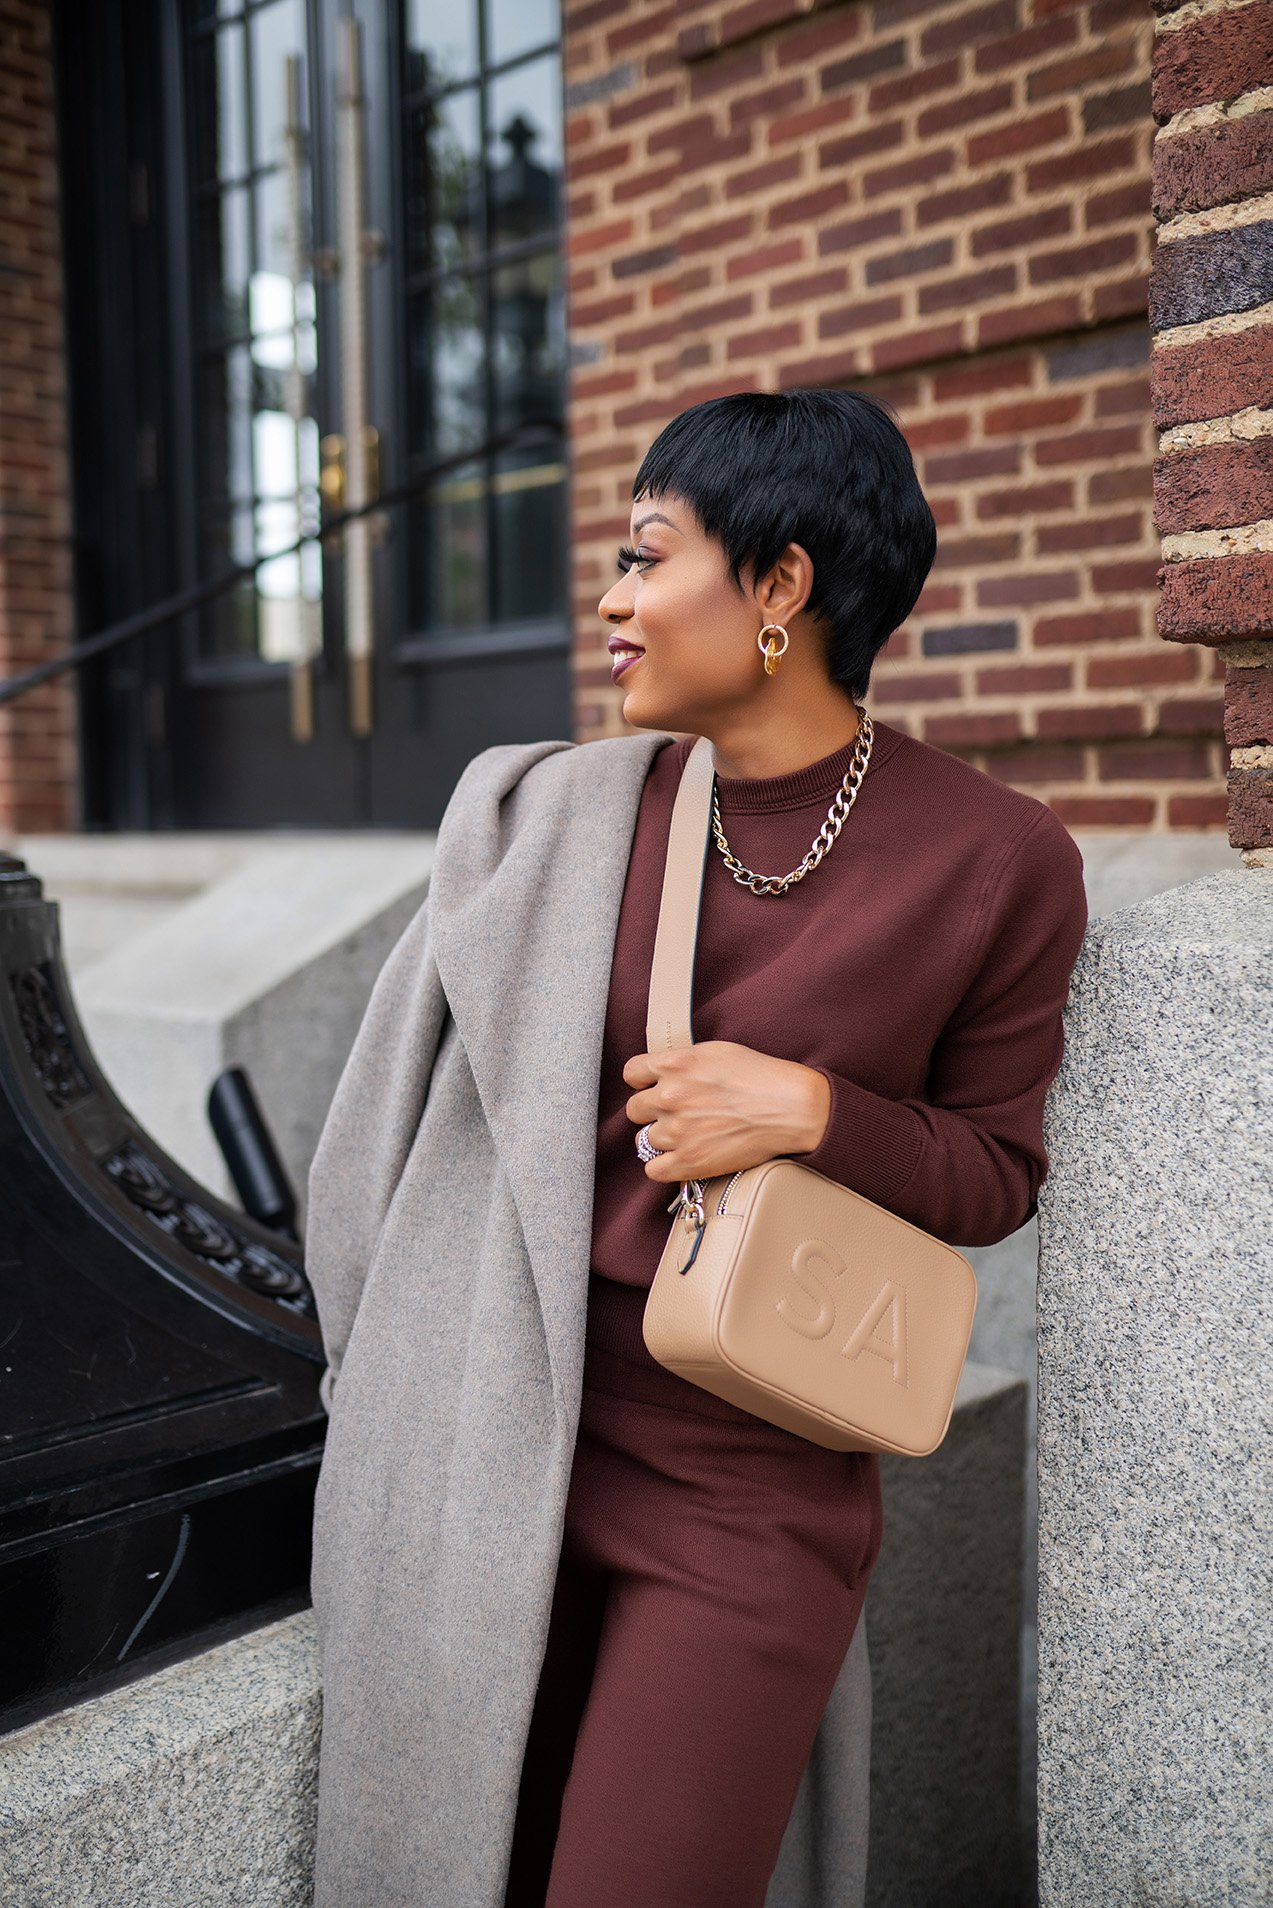 stella-adewunmi-of-jadore-fashion-blog-shares-leatherology-bag